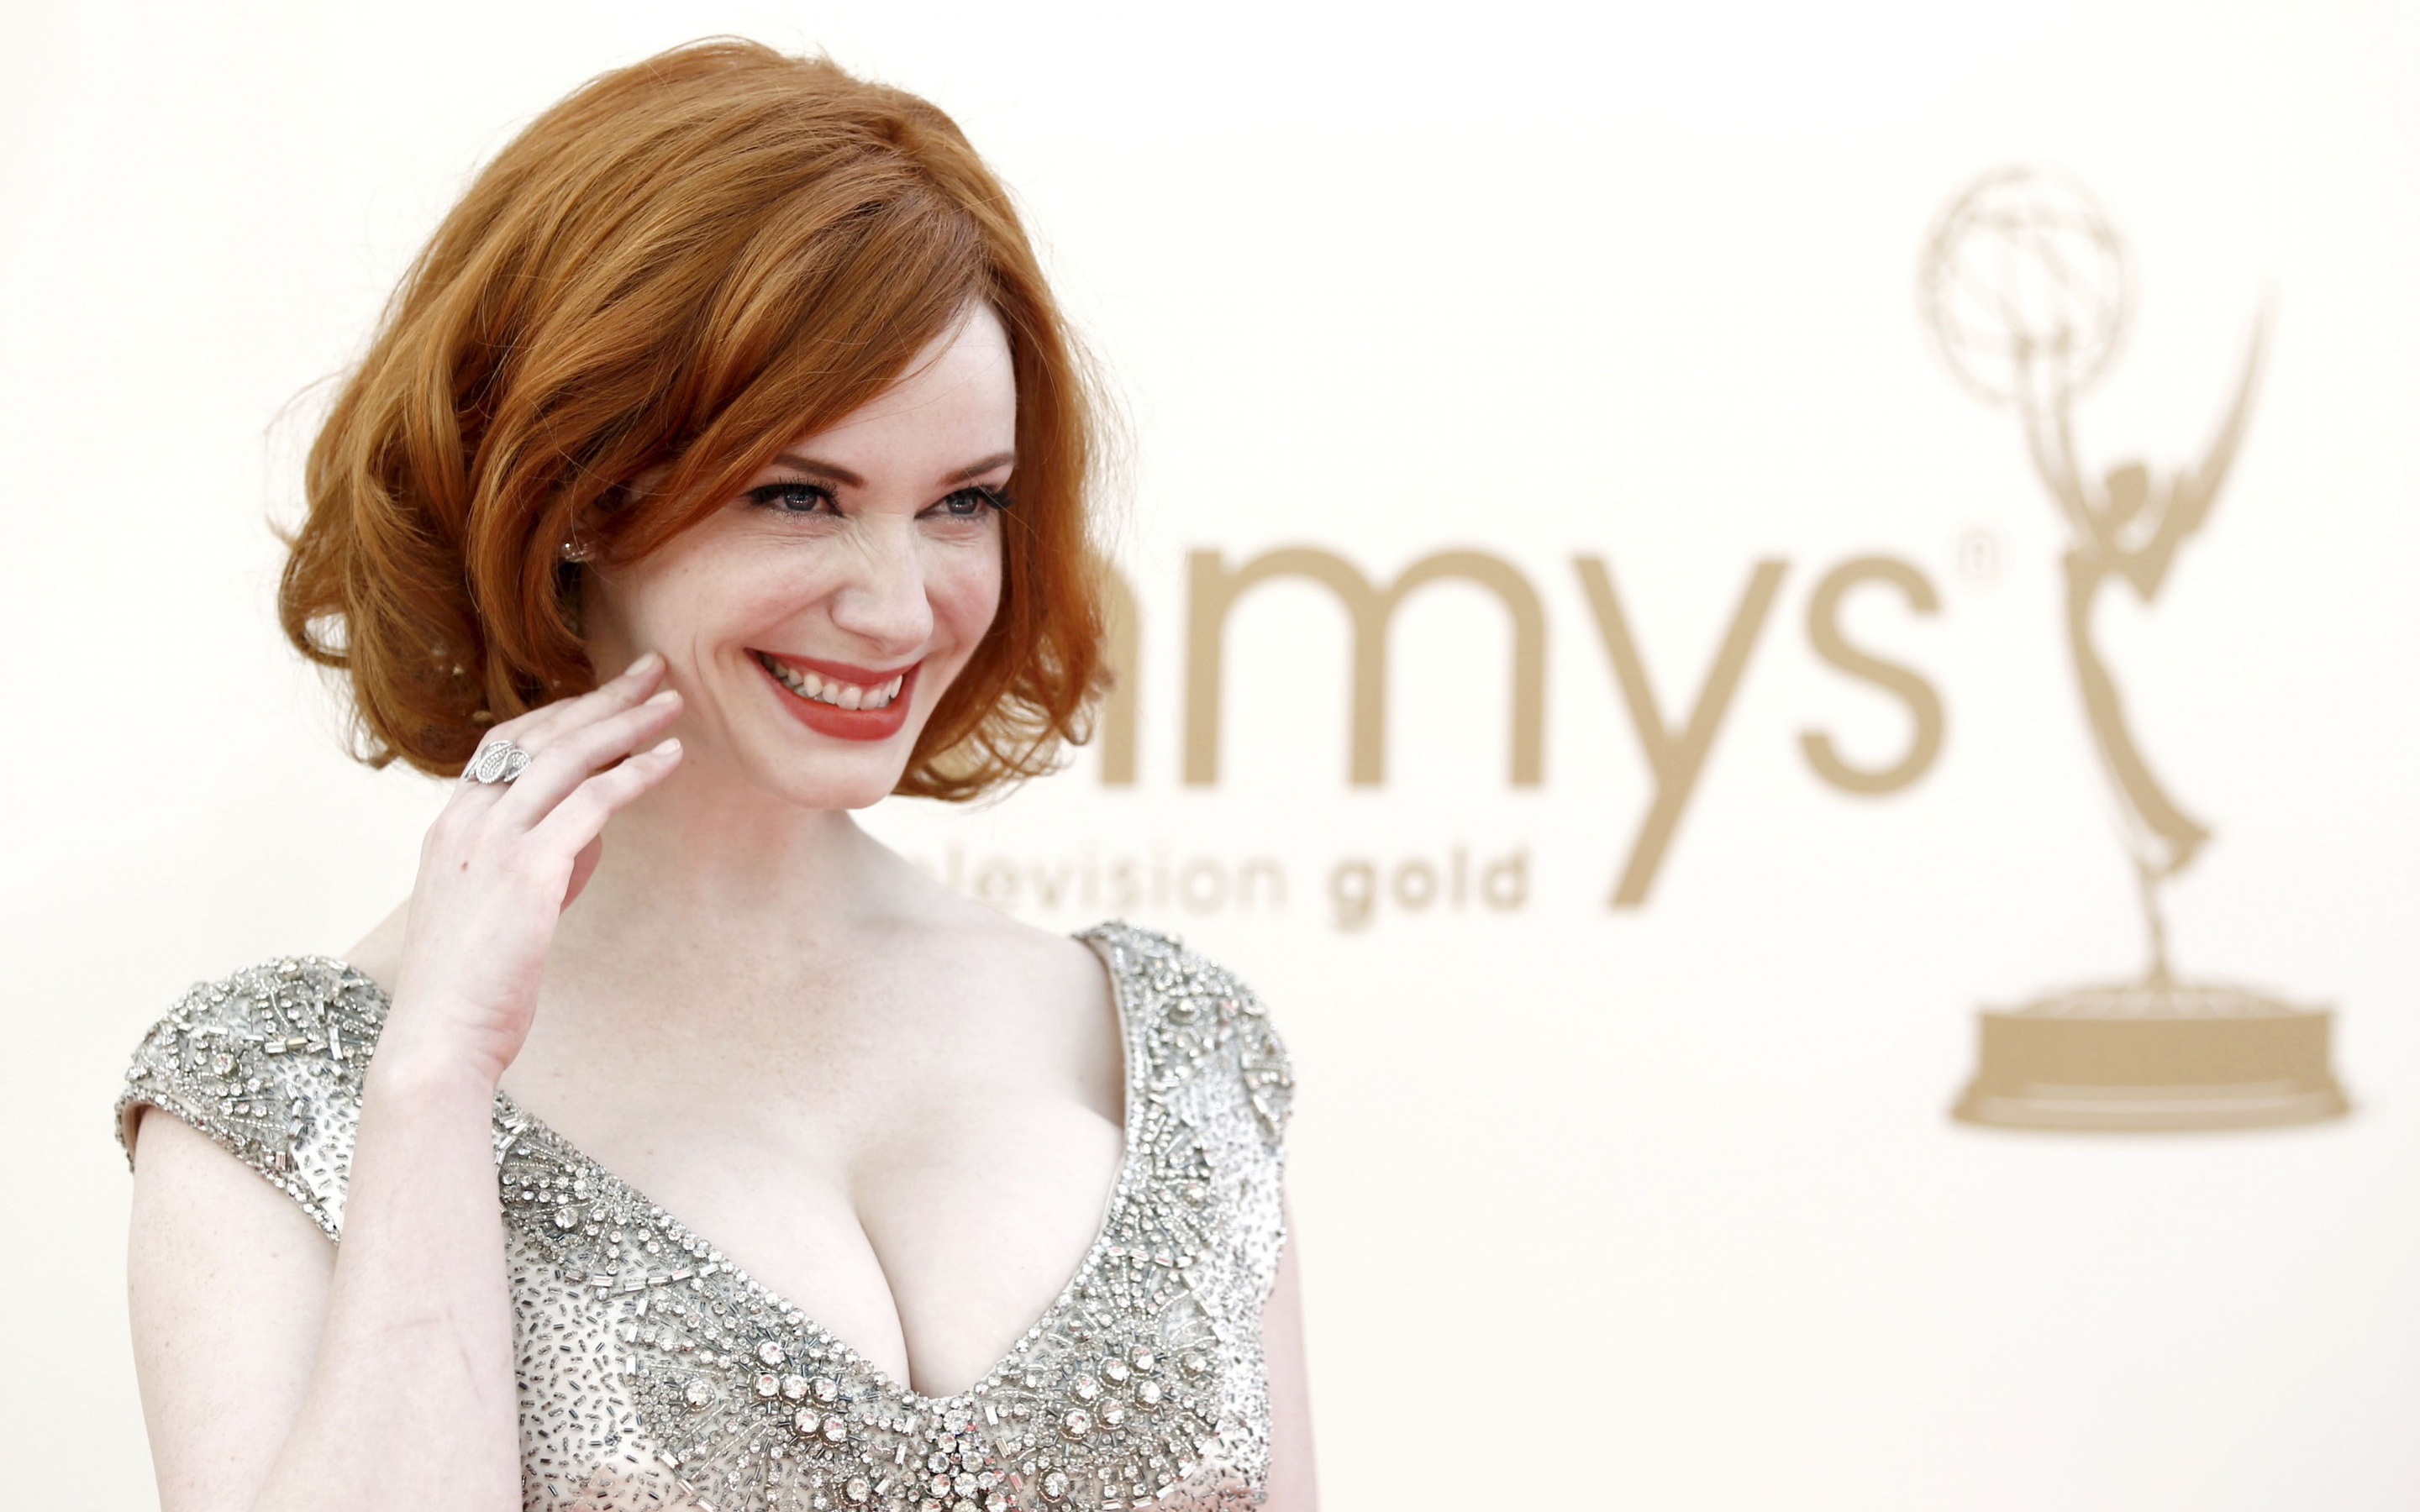 14863 Christina Hendricks Widescreen Wallpaper 28801800 2880x1800